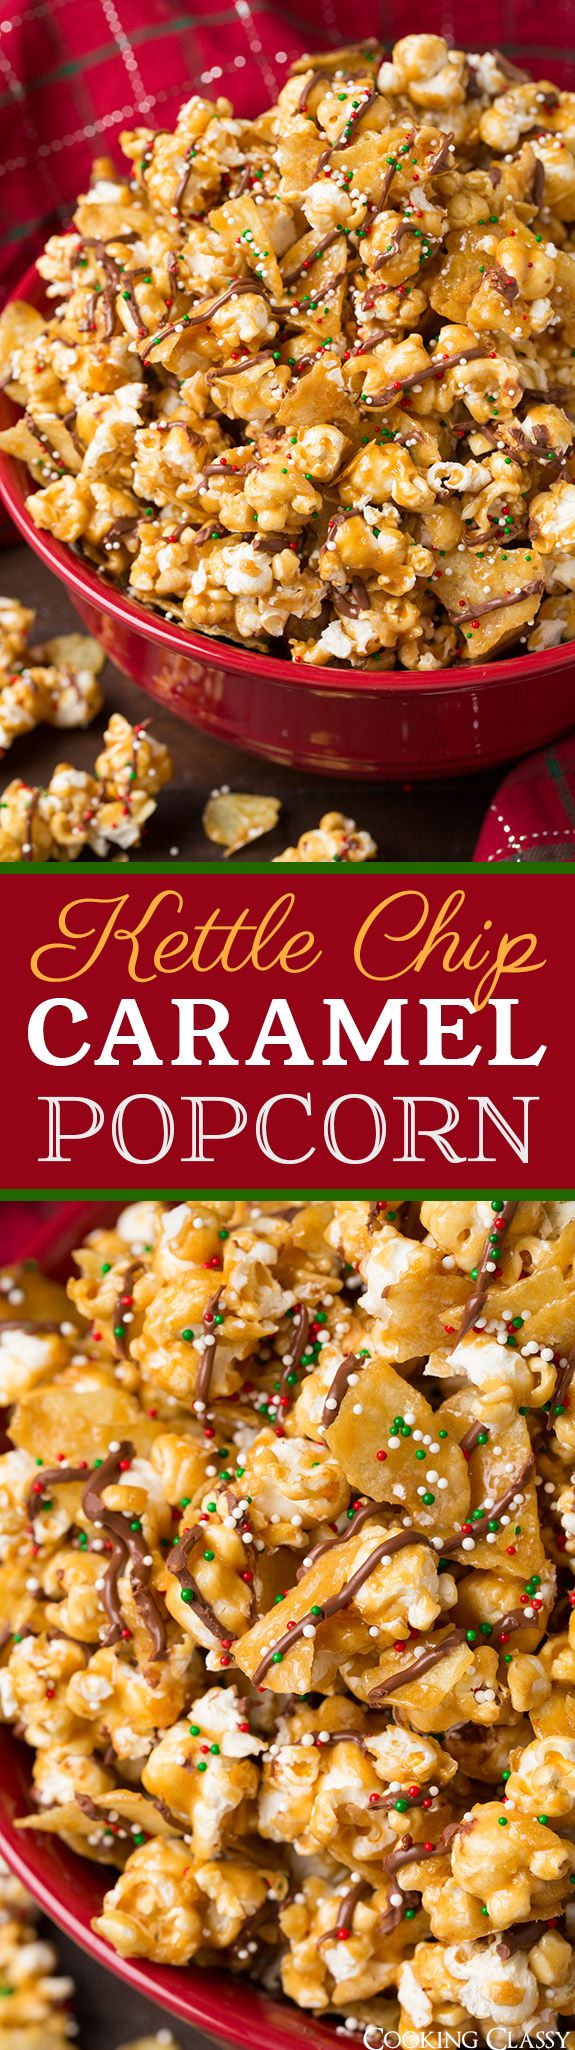 Kettle Chip Caramel Popcorn - sweet and salty and perfectly crunchy! Absolutely love this stuff!! No one could resist it! #kettlebrand #spon